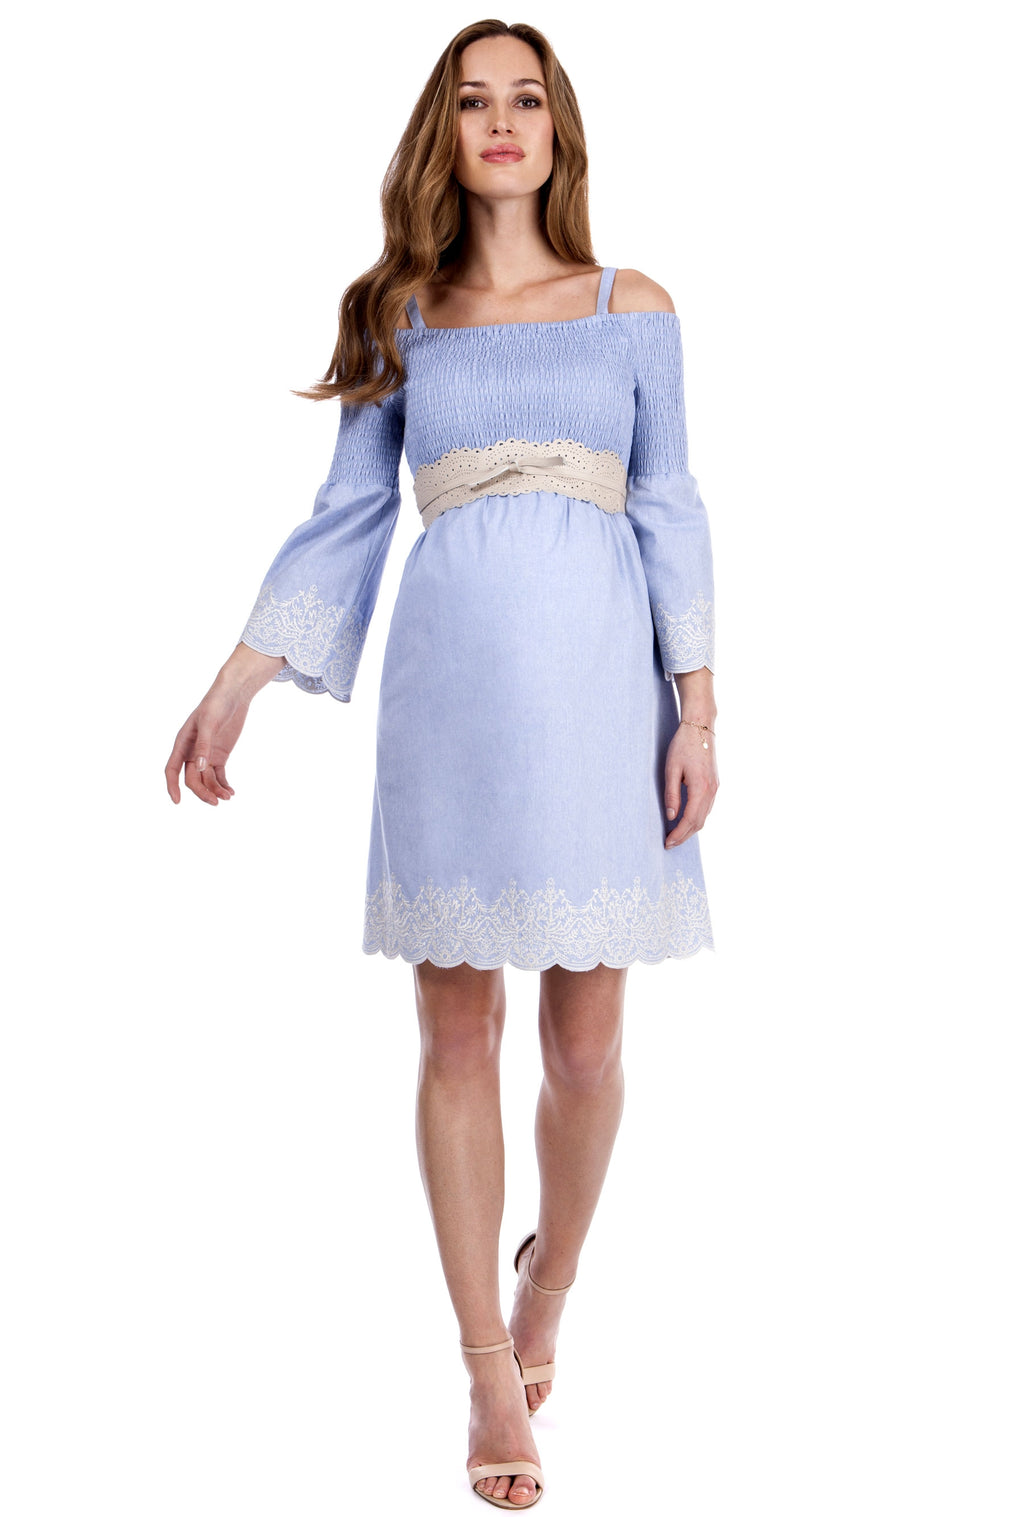 Seraphine Anais Maternity Cotton Dress